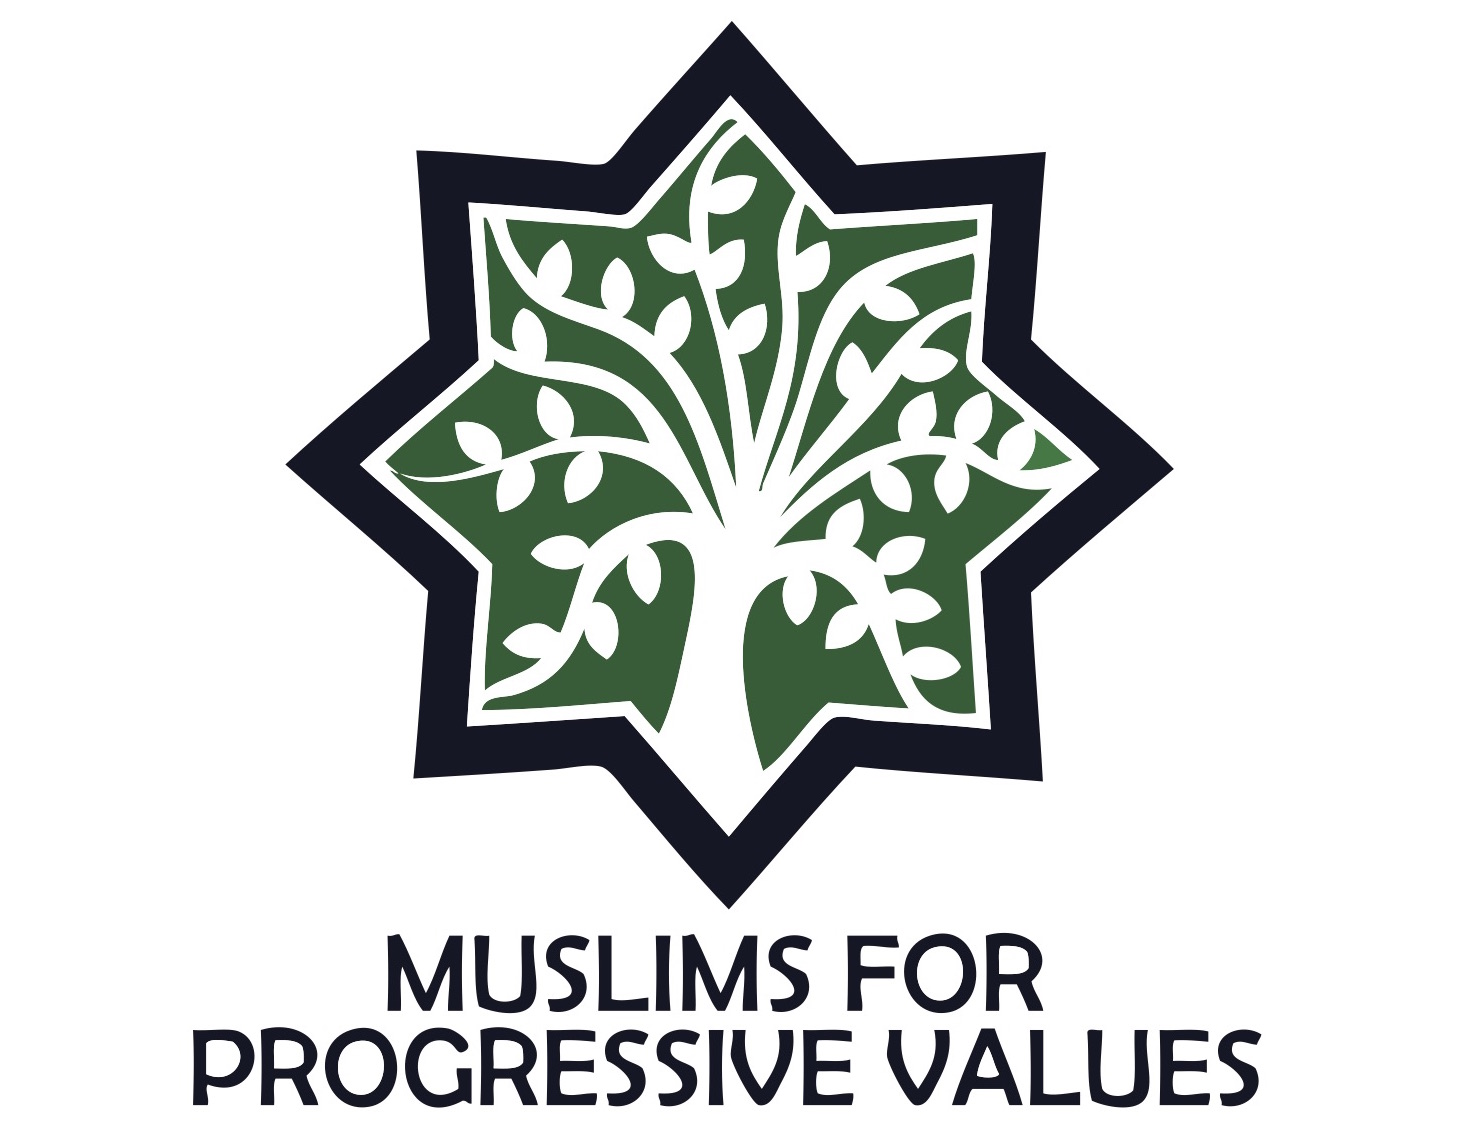 Muslims for Progressive Values Nederland